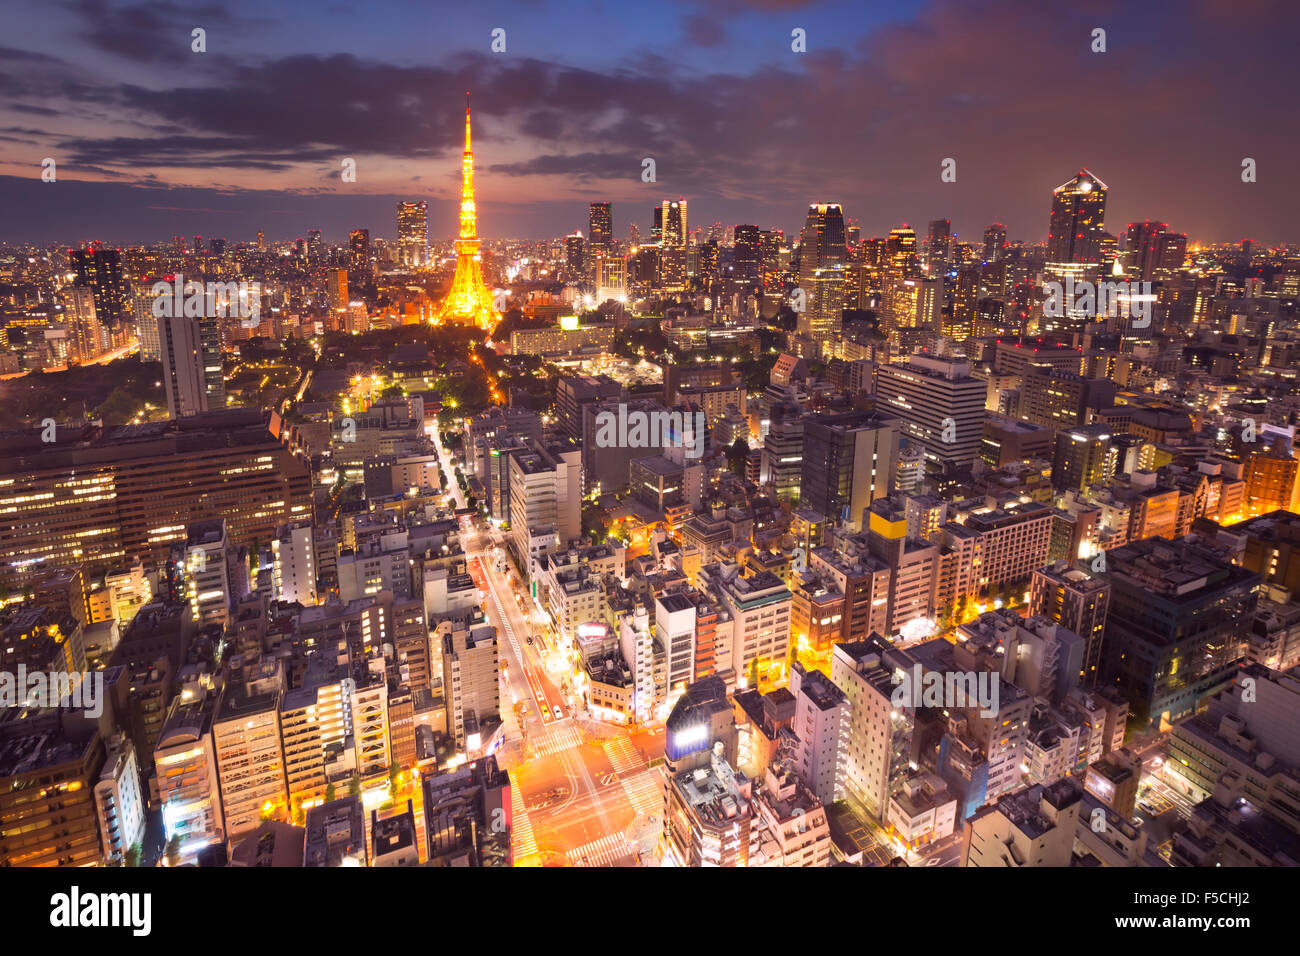 The skyline of Tokyo, Japan with the Tokyo Tower photographed at dusk. - Stock Image